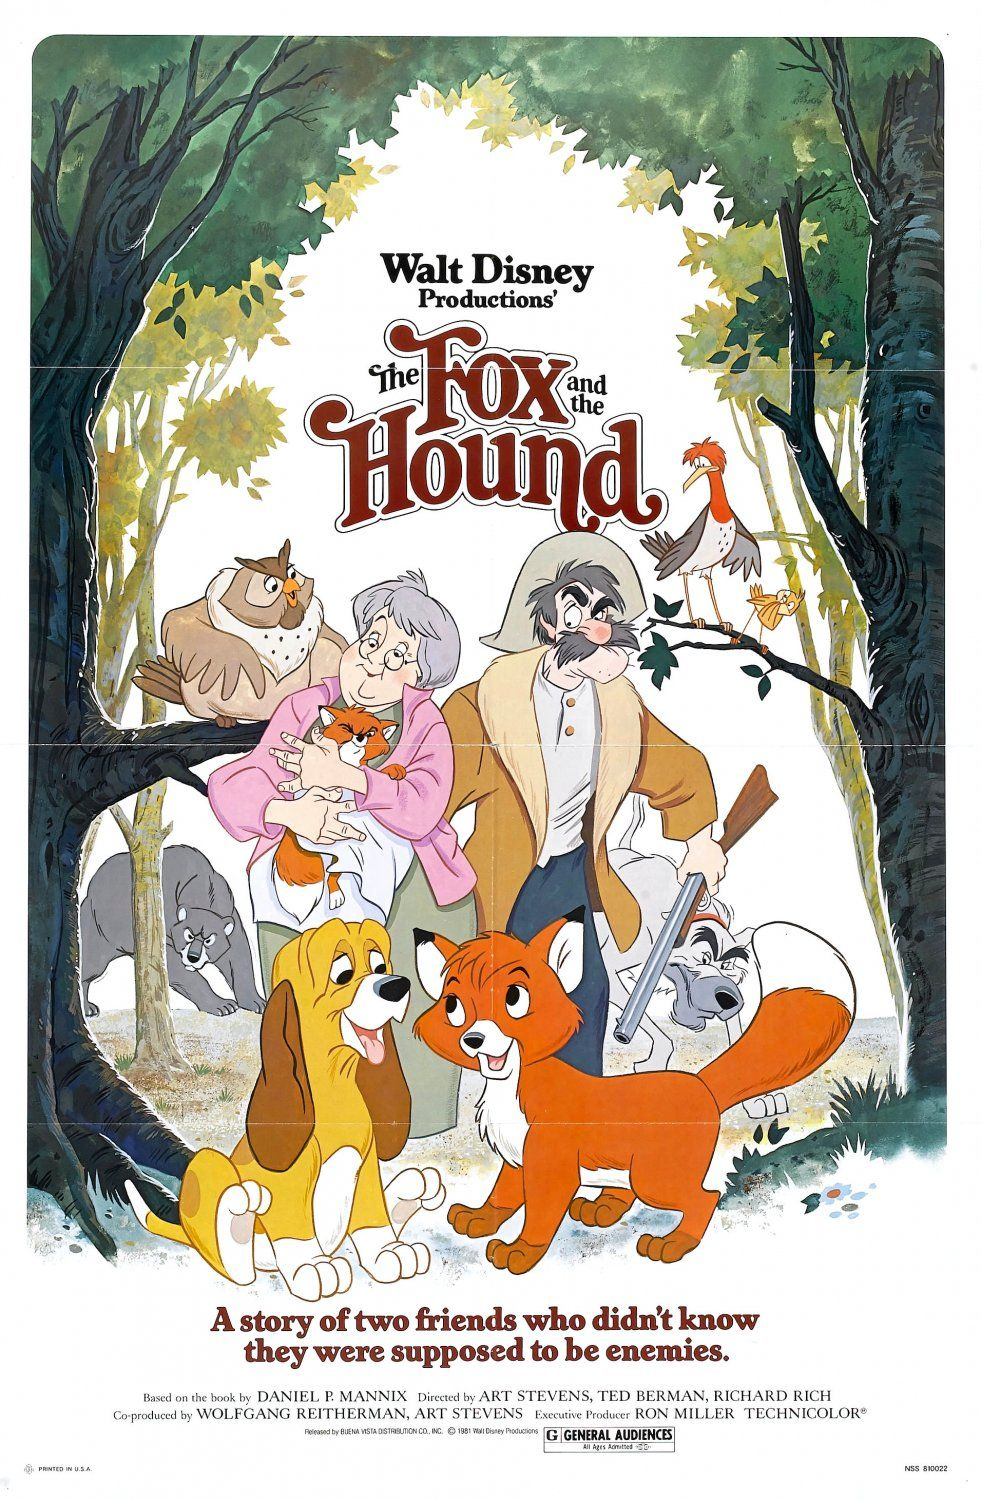 Fox and friends mega deals and steals - Extra Large Movie Poster Image For The Fox And The Hound